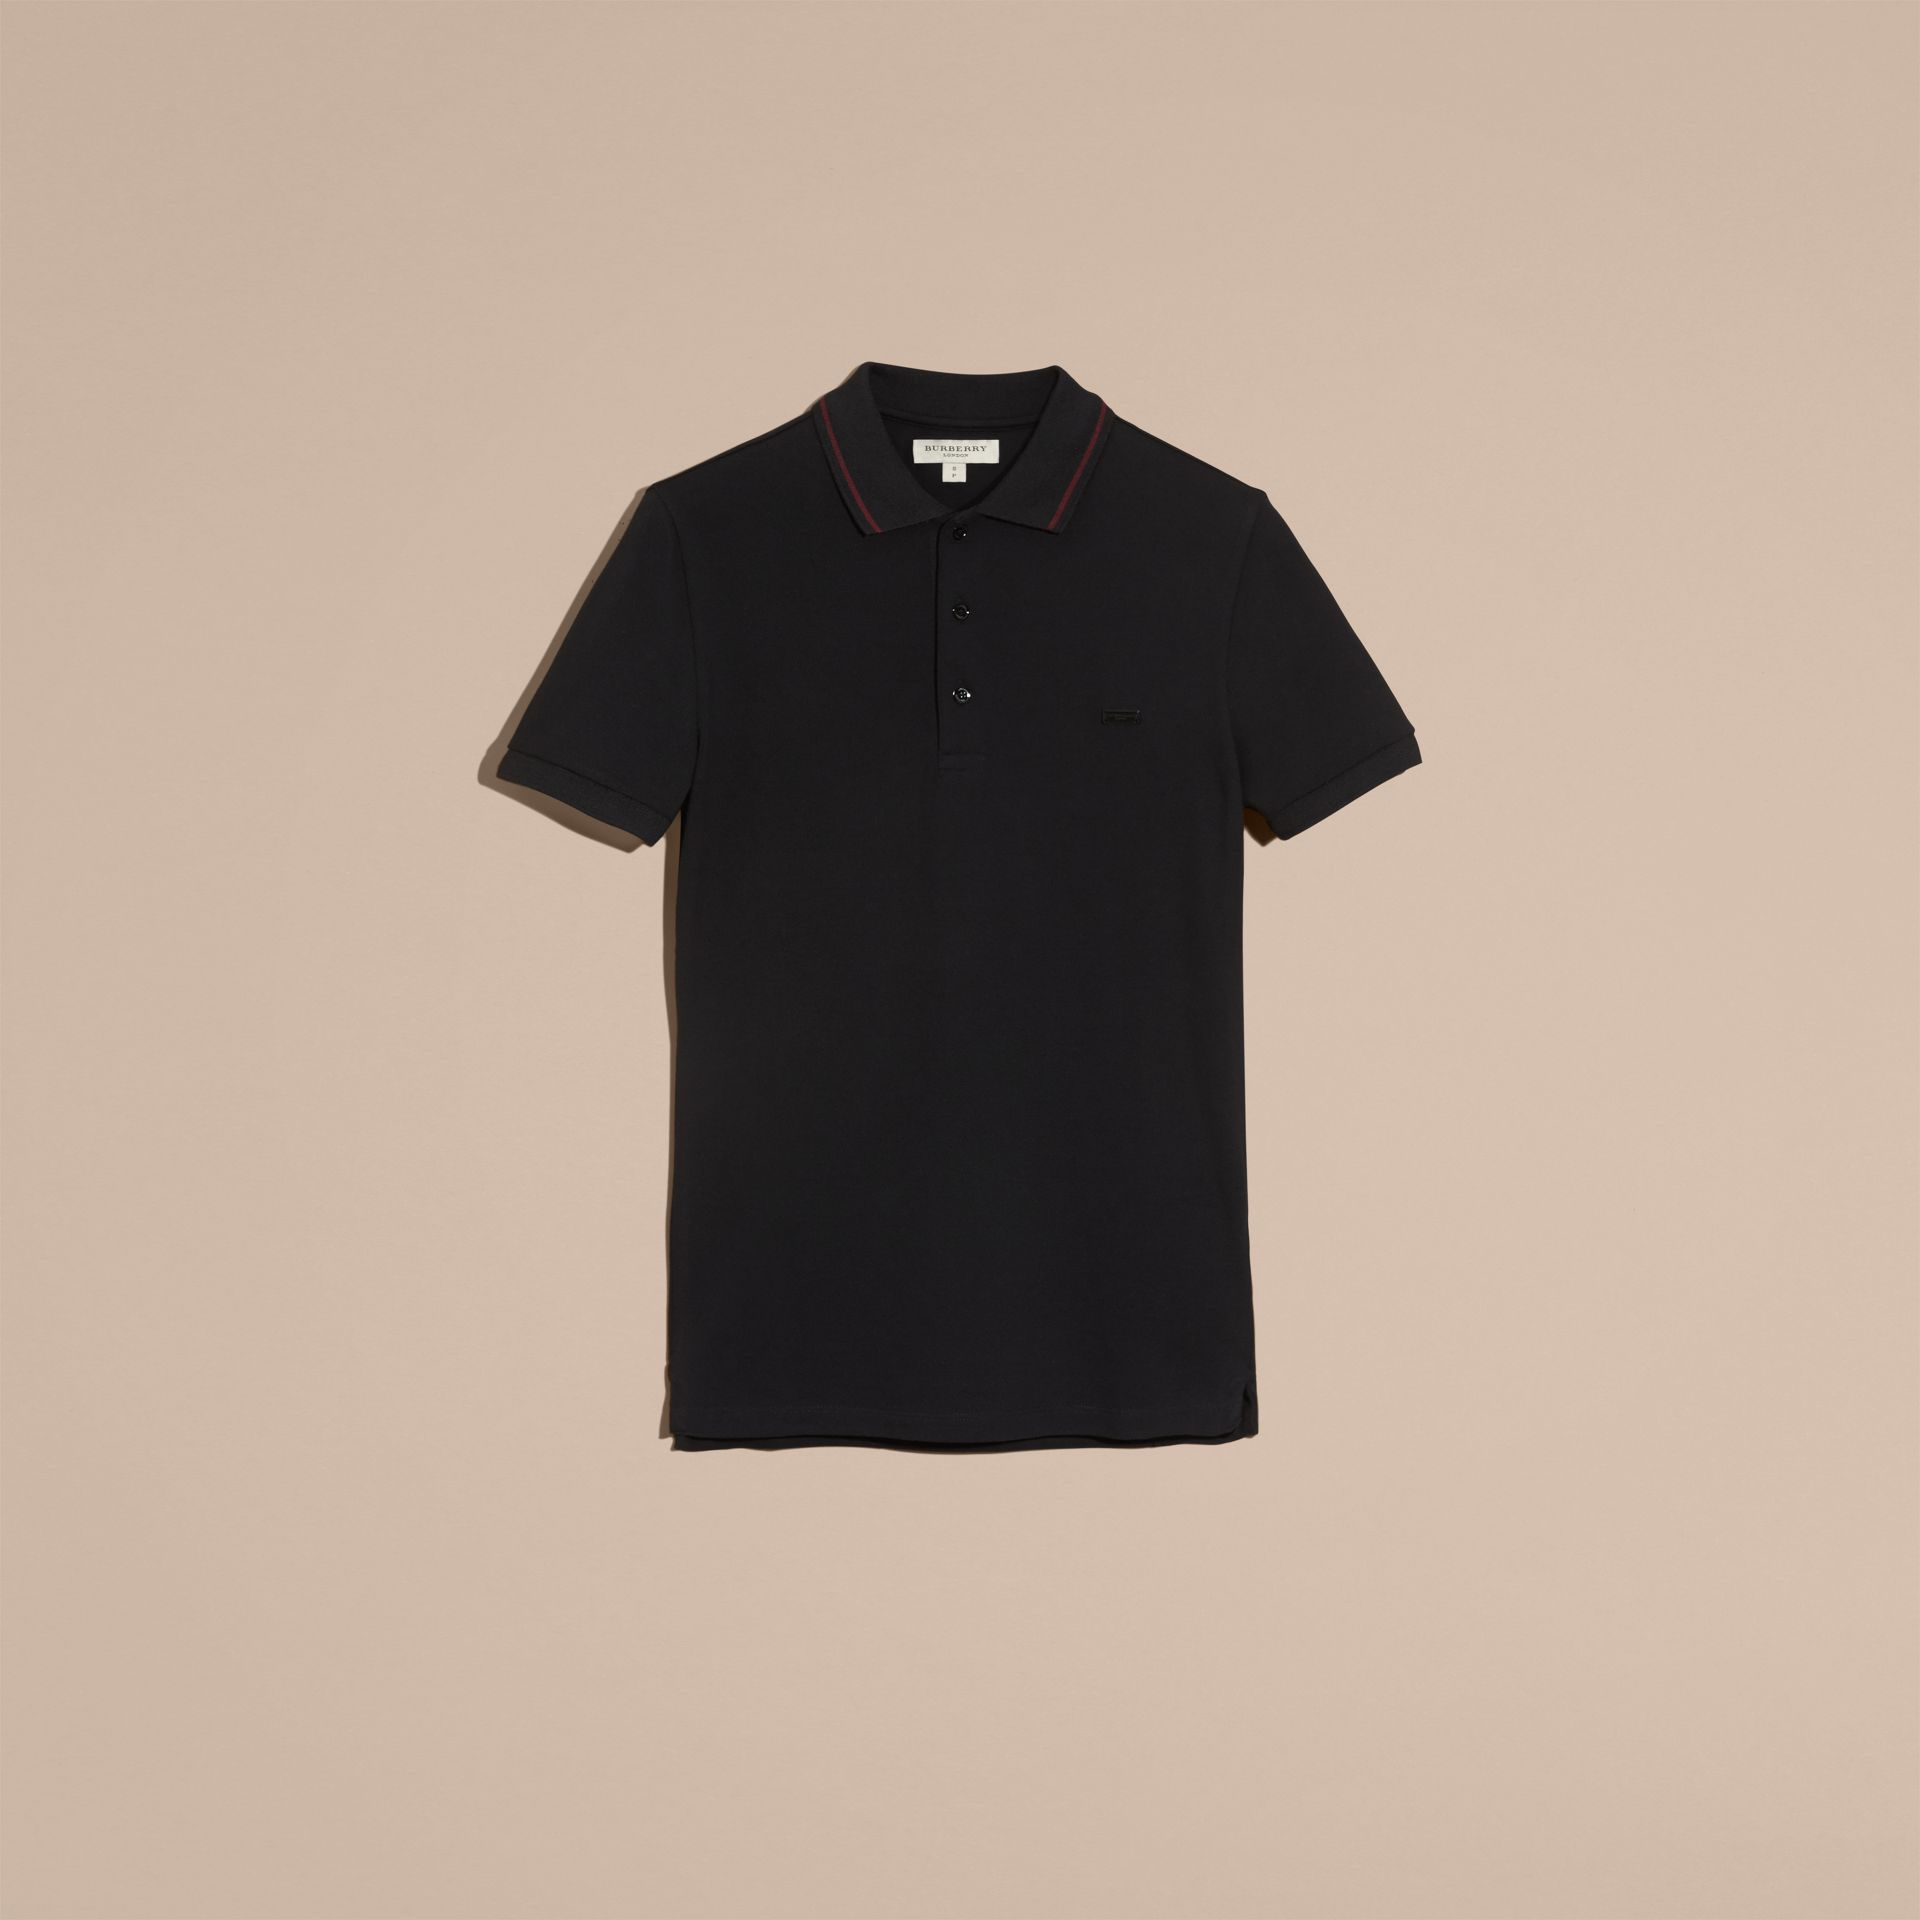 Black/mahogany red Contrast Trim Cotton Piqué Polo Shirt Black/mahogany Red - gallery image 4